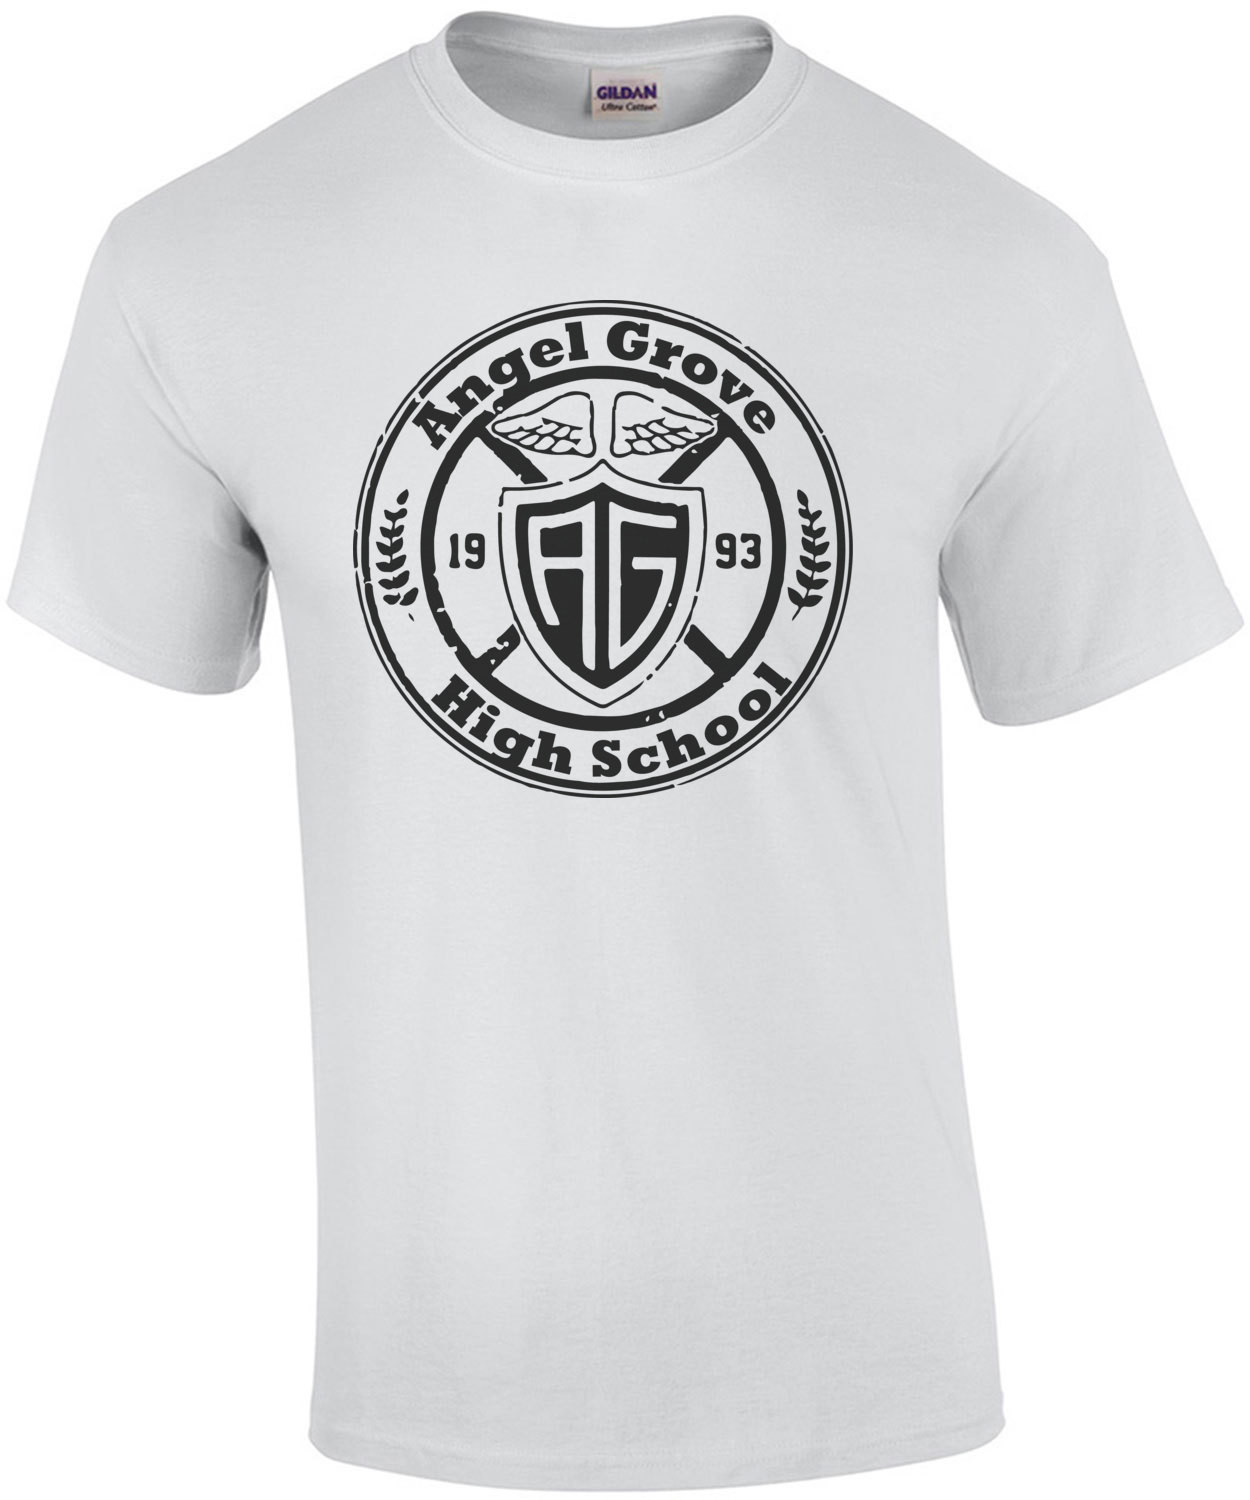 Angel Grove High School - Mighty Morphin Power Rangers - Cool 90's T-Shirt